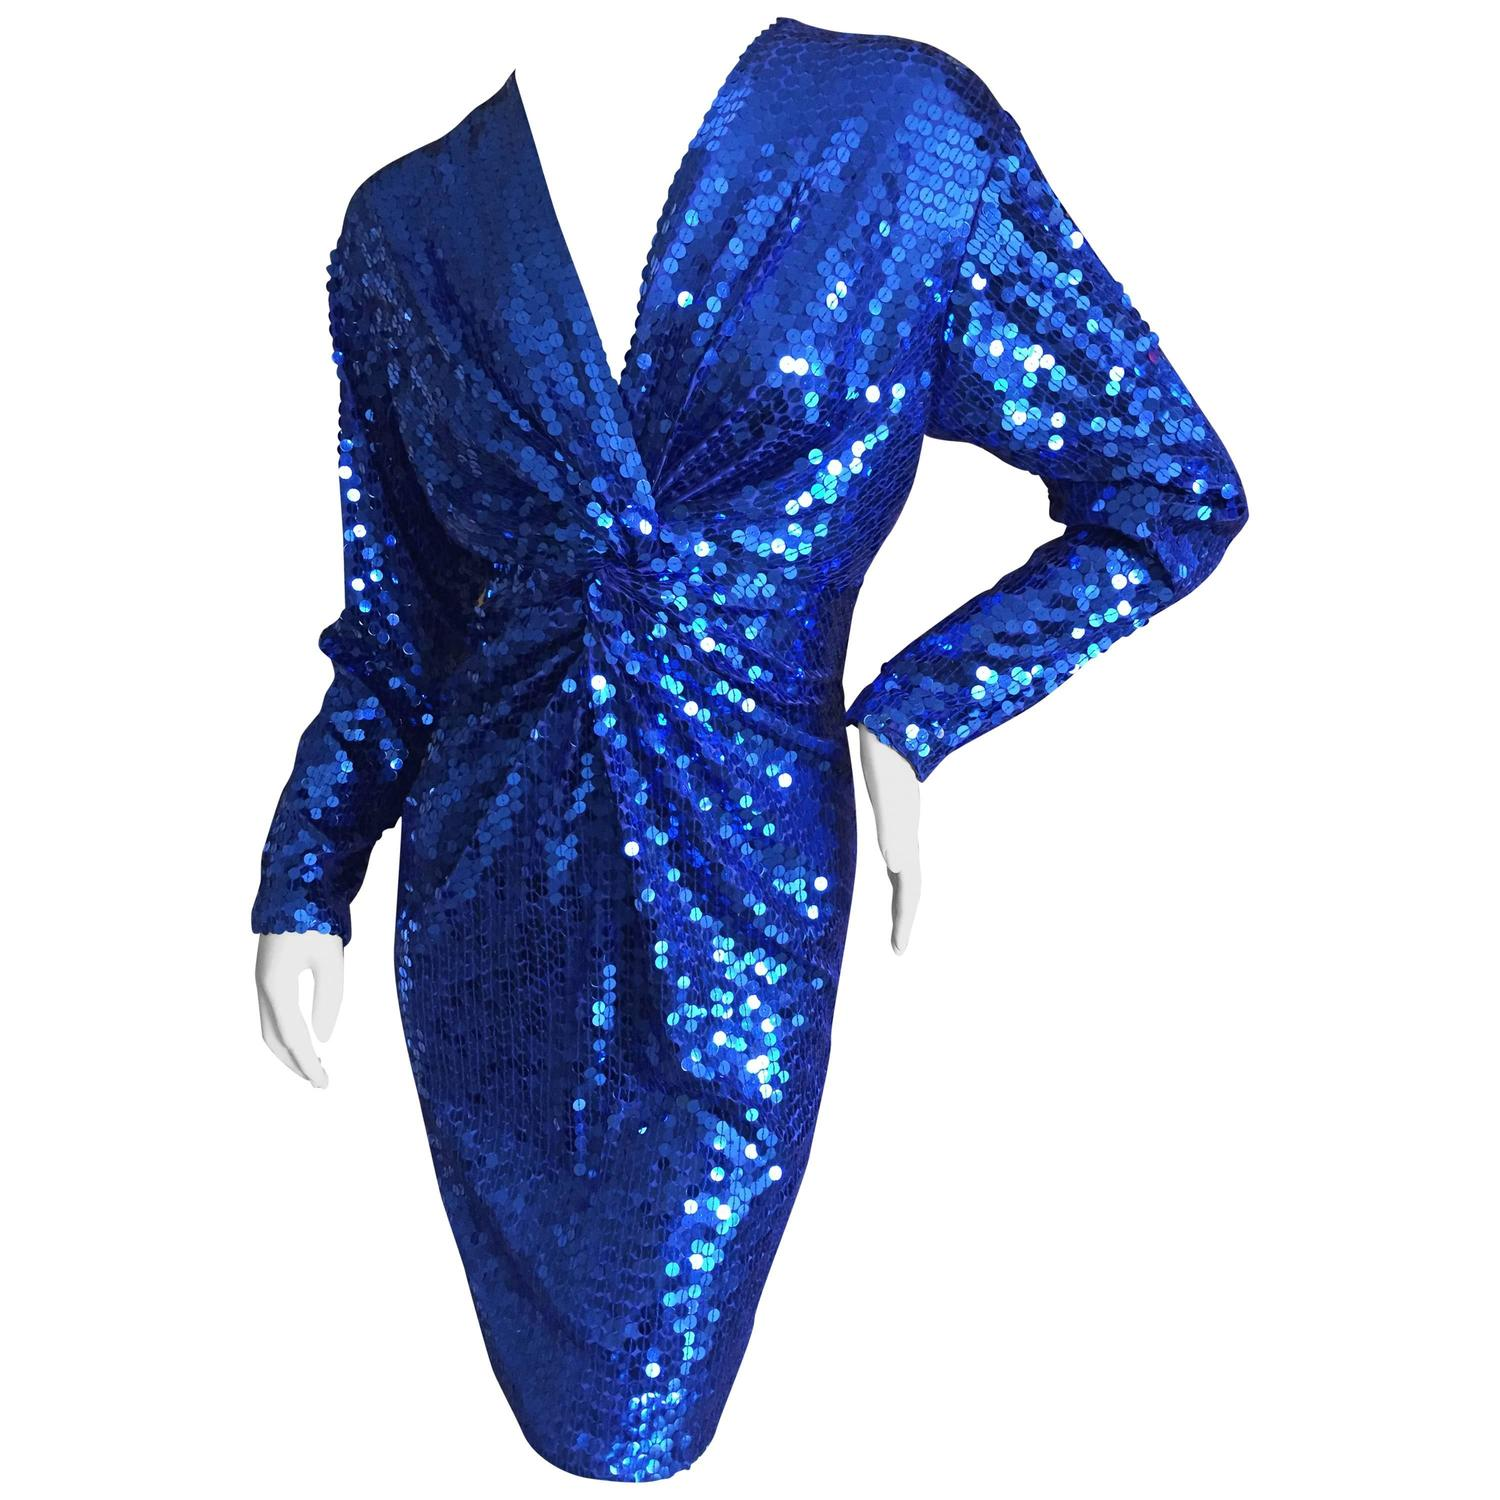 Oleg Cassini 1970's Sequin Disco Era Dress For Sale at 1stdibs